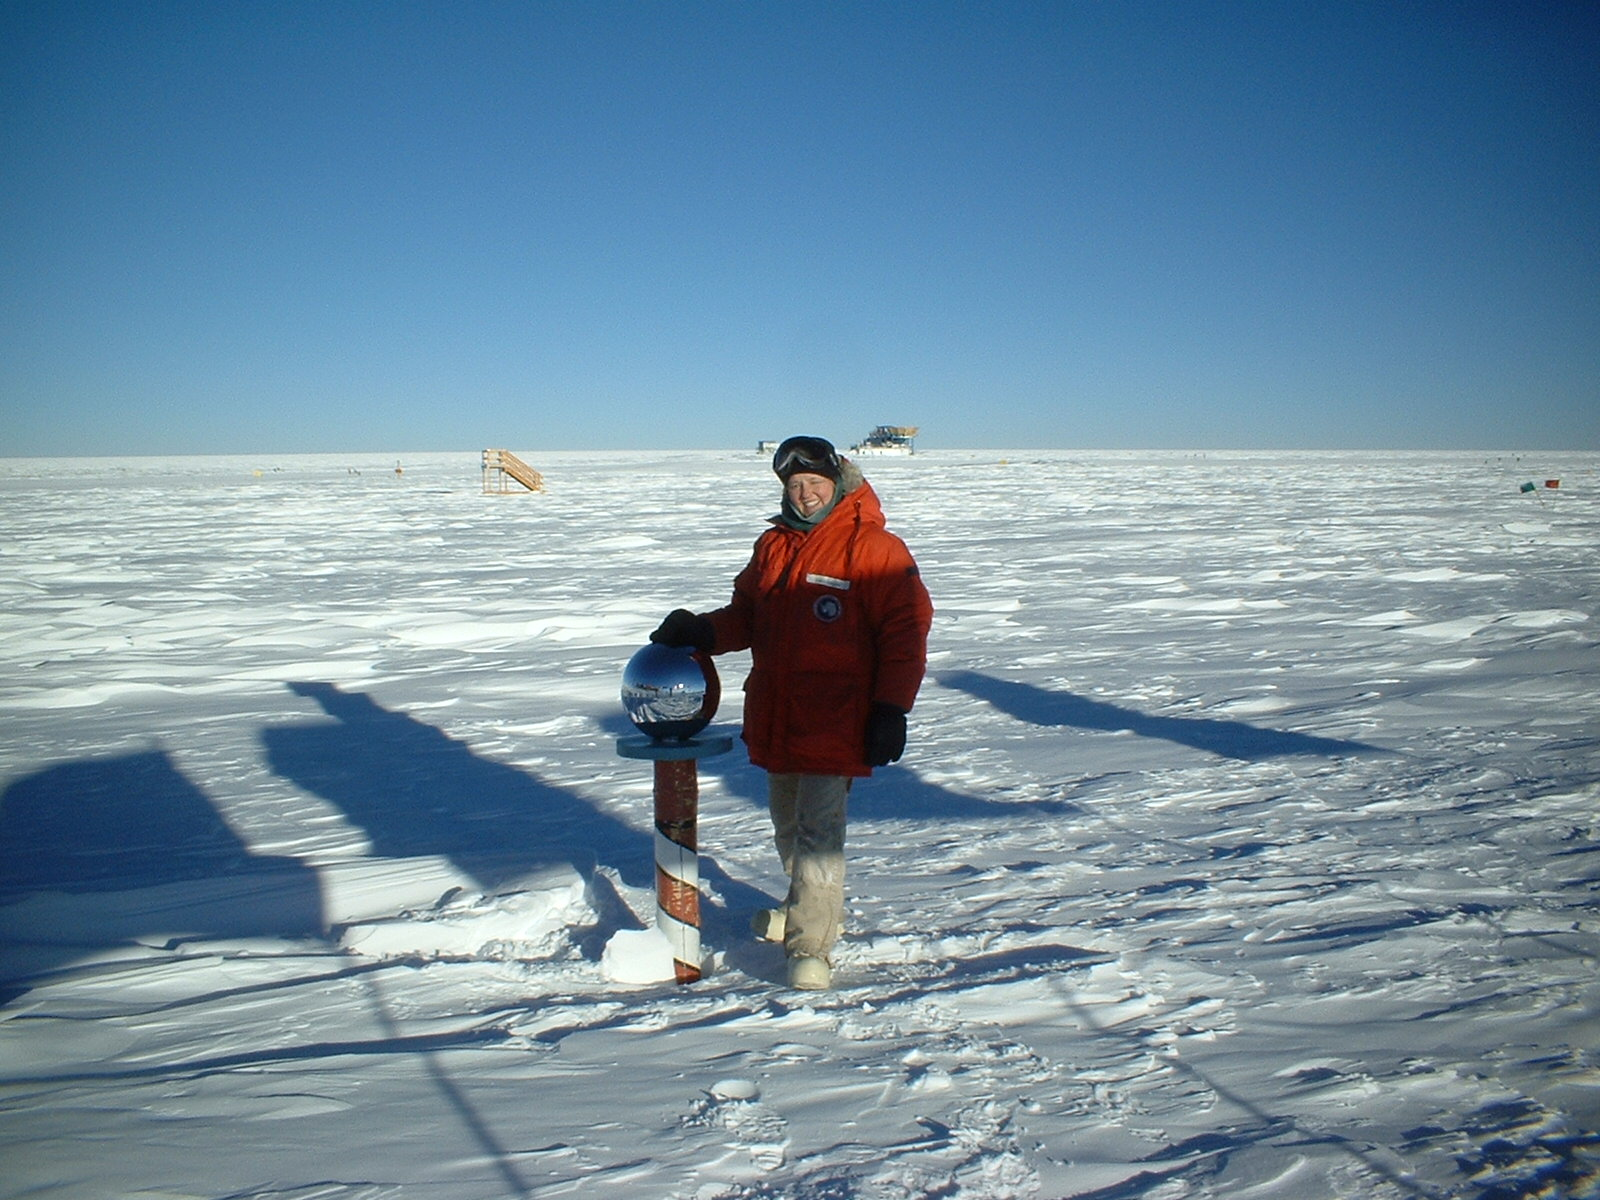 Lacy Shelby at the geographic South Pole, 2002